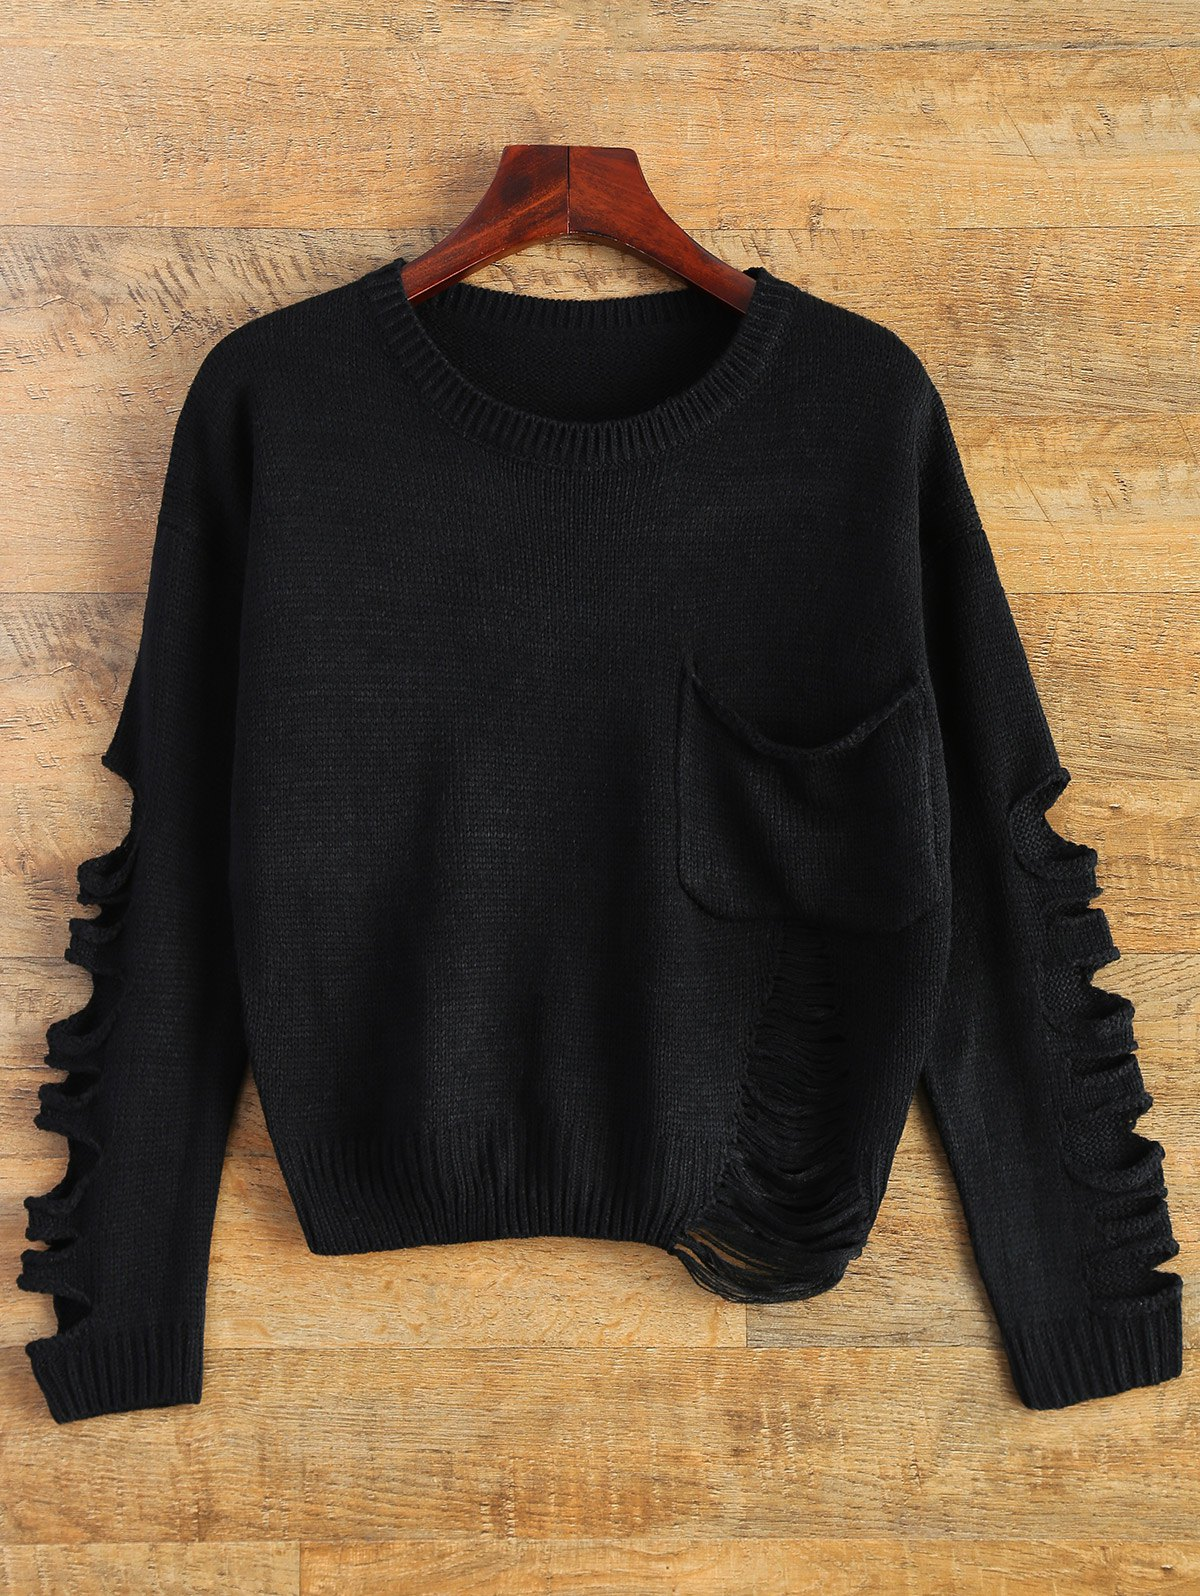 Patch Pocket Ripped Sweater